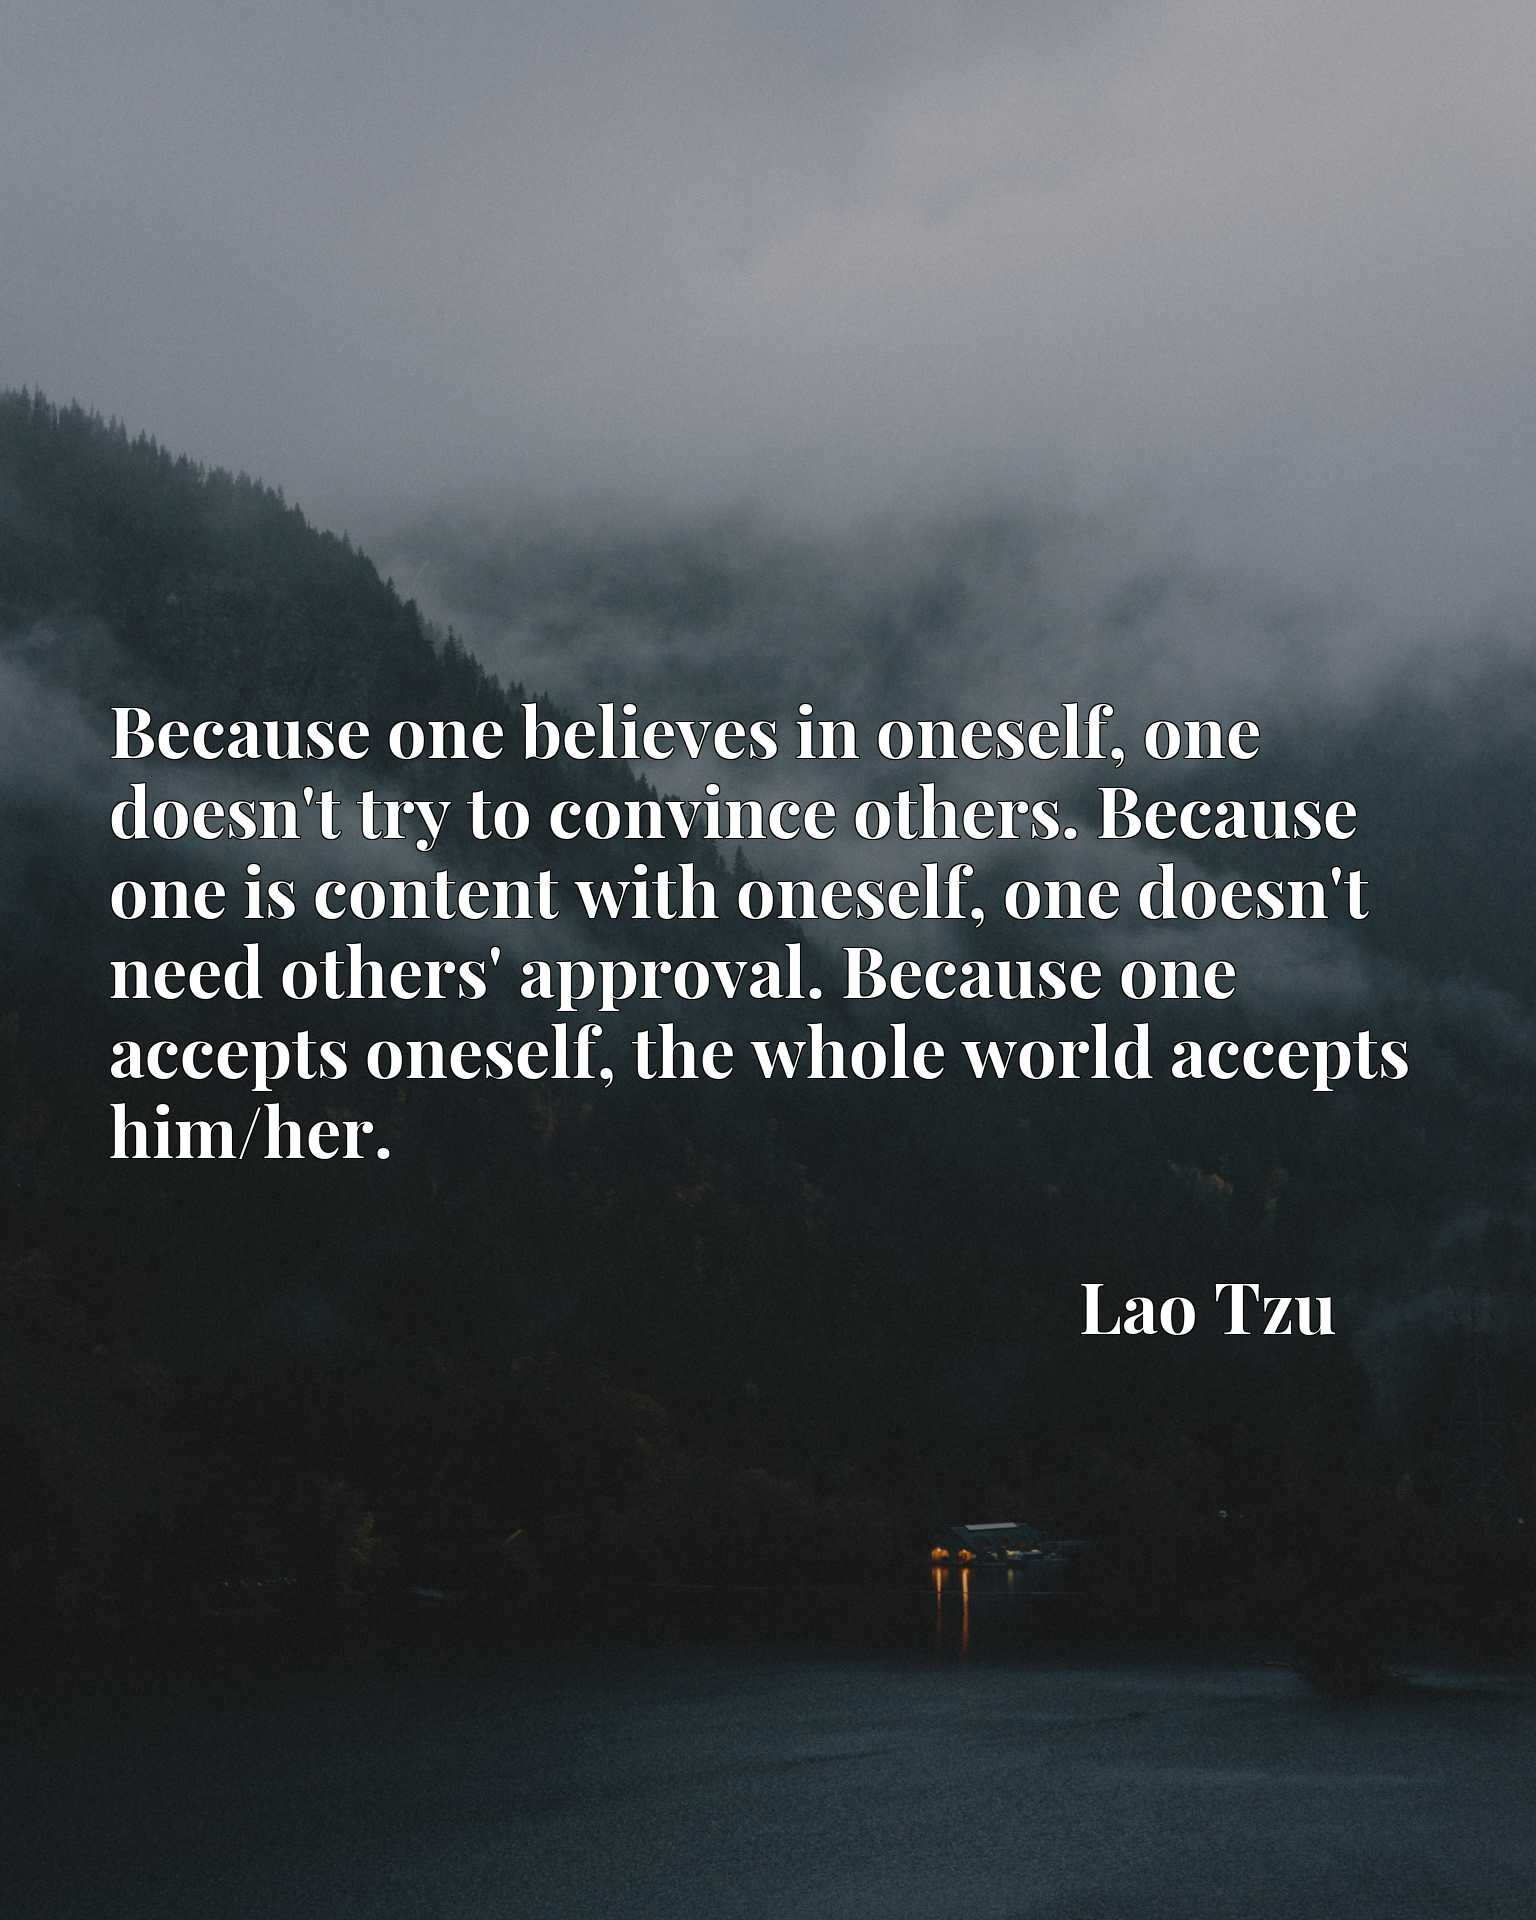 Because one believes in oneself, one doesn't try to convince others. Because one is content with oneself, one doesn't need others' approval. Because one accepts oneself, the whole world accepts him/her.